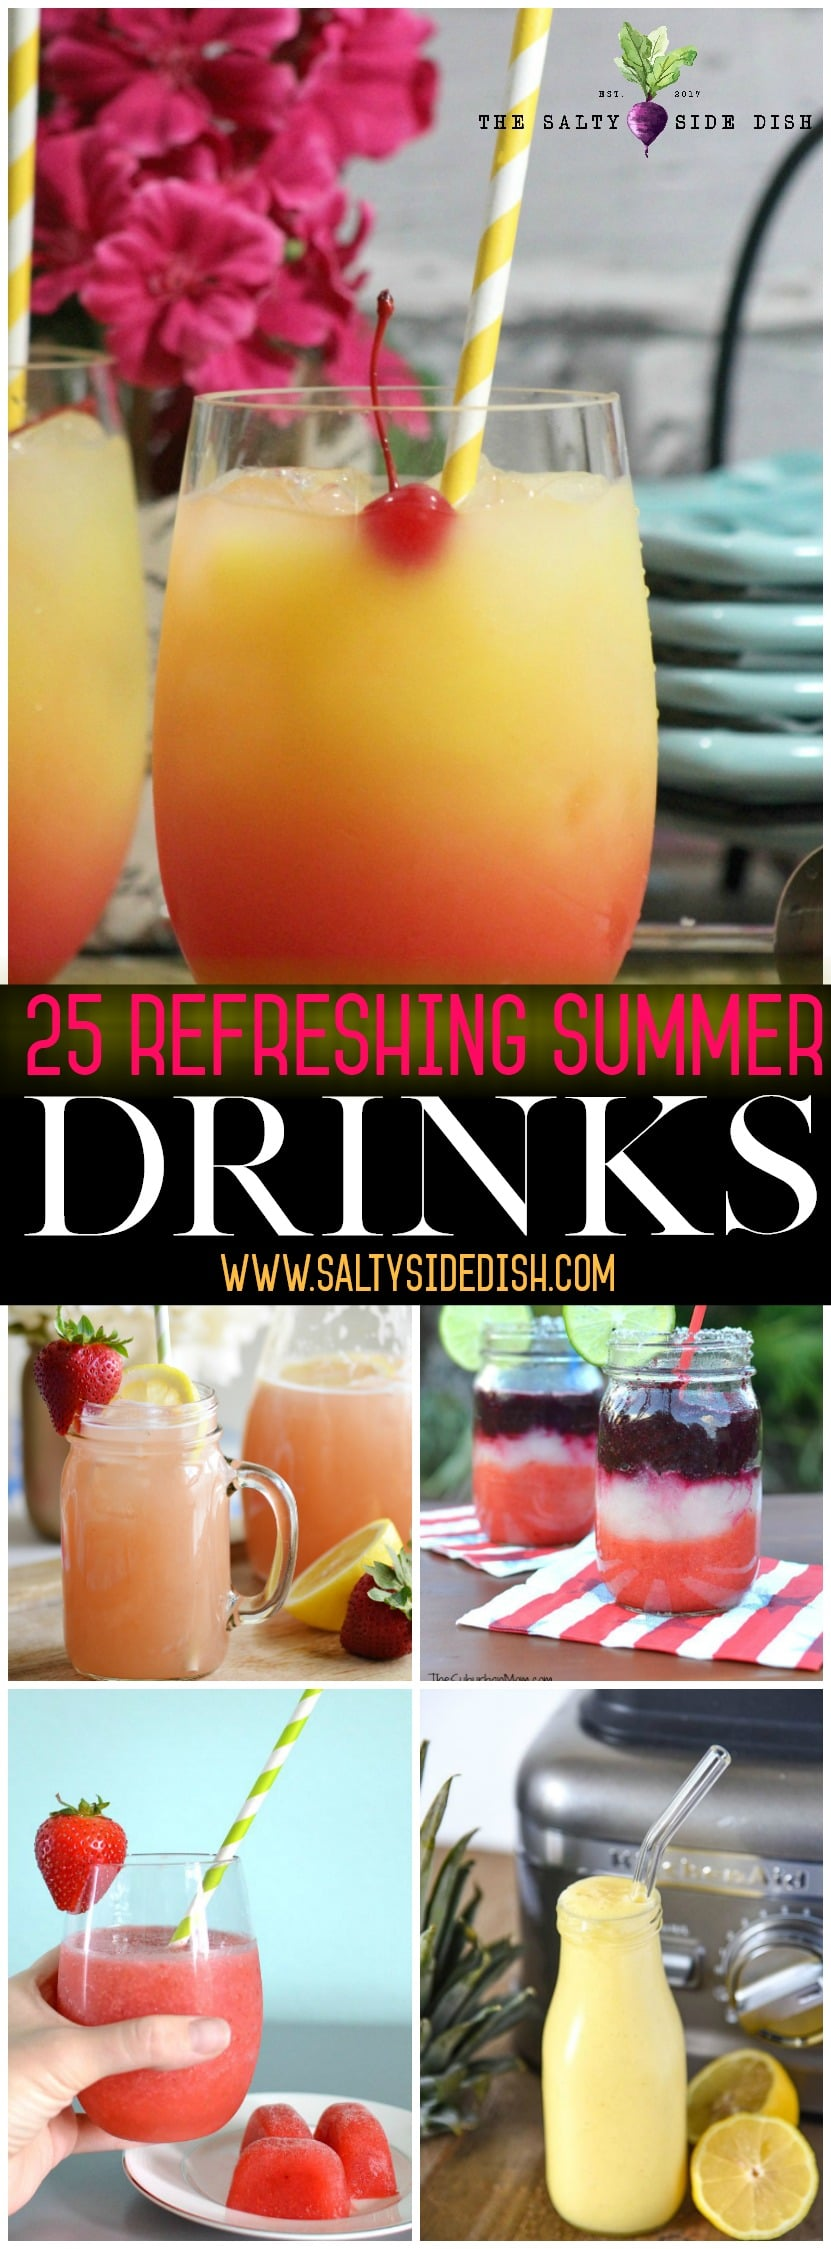 25 Refreshing Summer Drinks perfect for spring, summer, and BBQ parties | Kid Friendly, Alcoholic and Mocktails